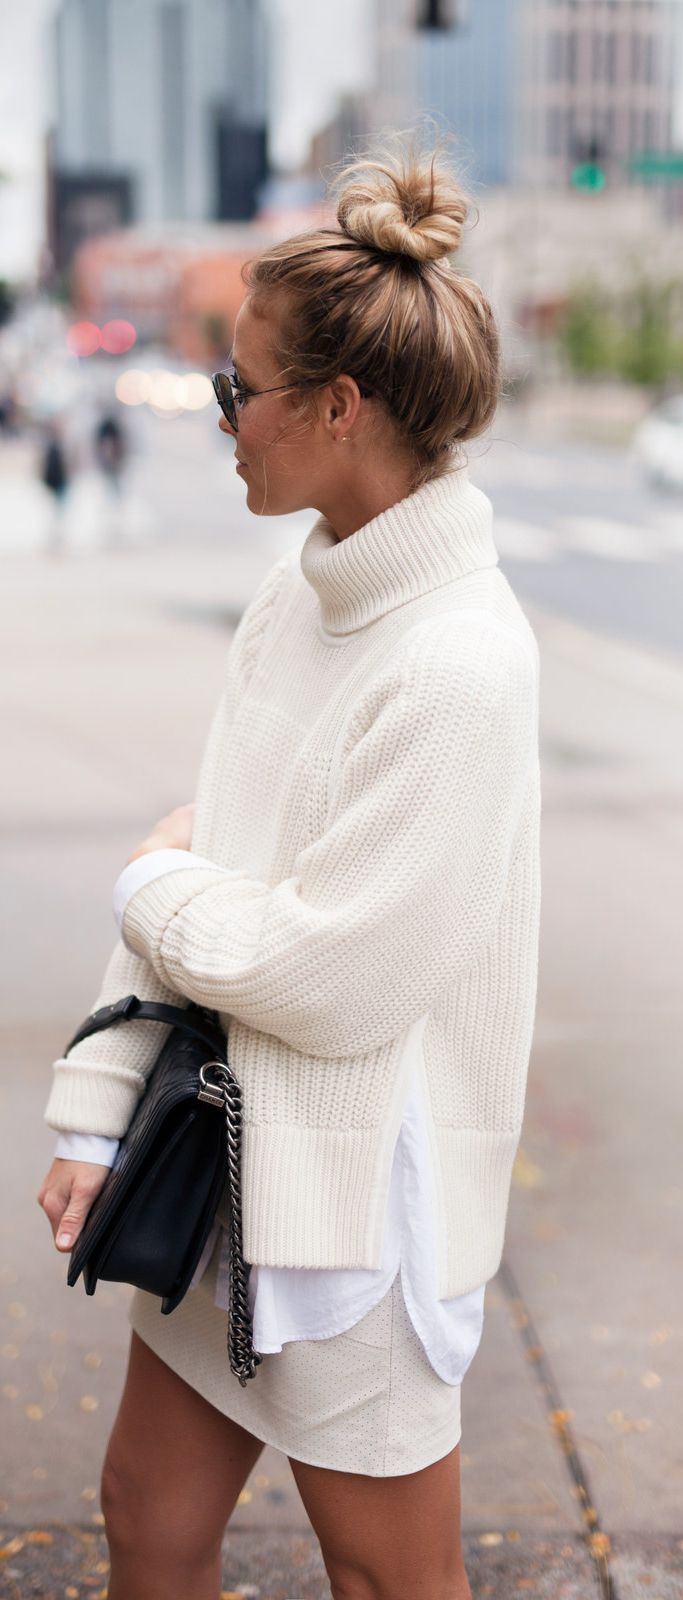 Mary Seng in a white chunky knit turtleneck sweater from Helmut Lang with white short skirt...x